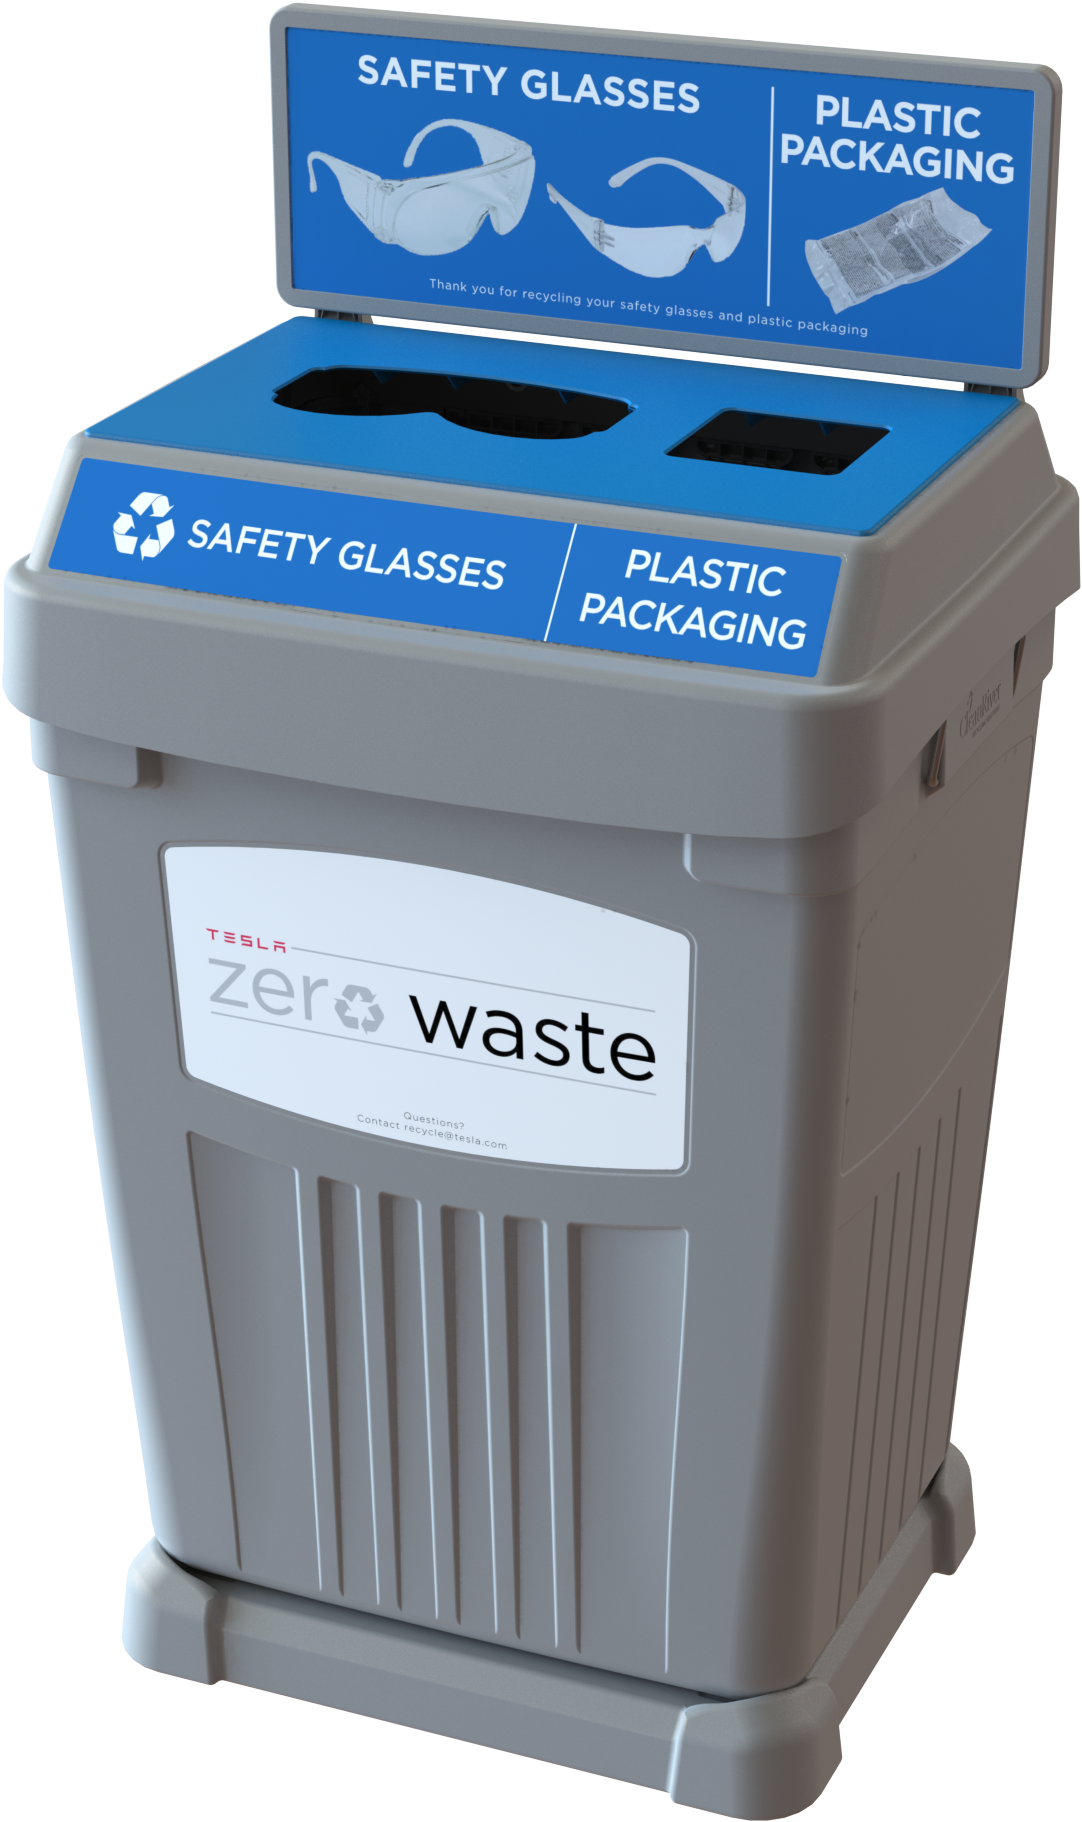 Download HD Flex E™ Bin To Collect Tesla Safety Glasses - Safety